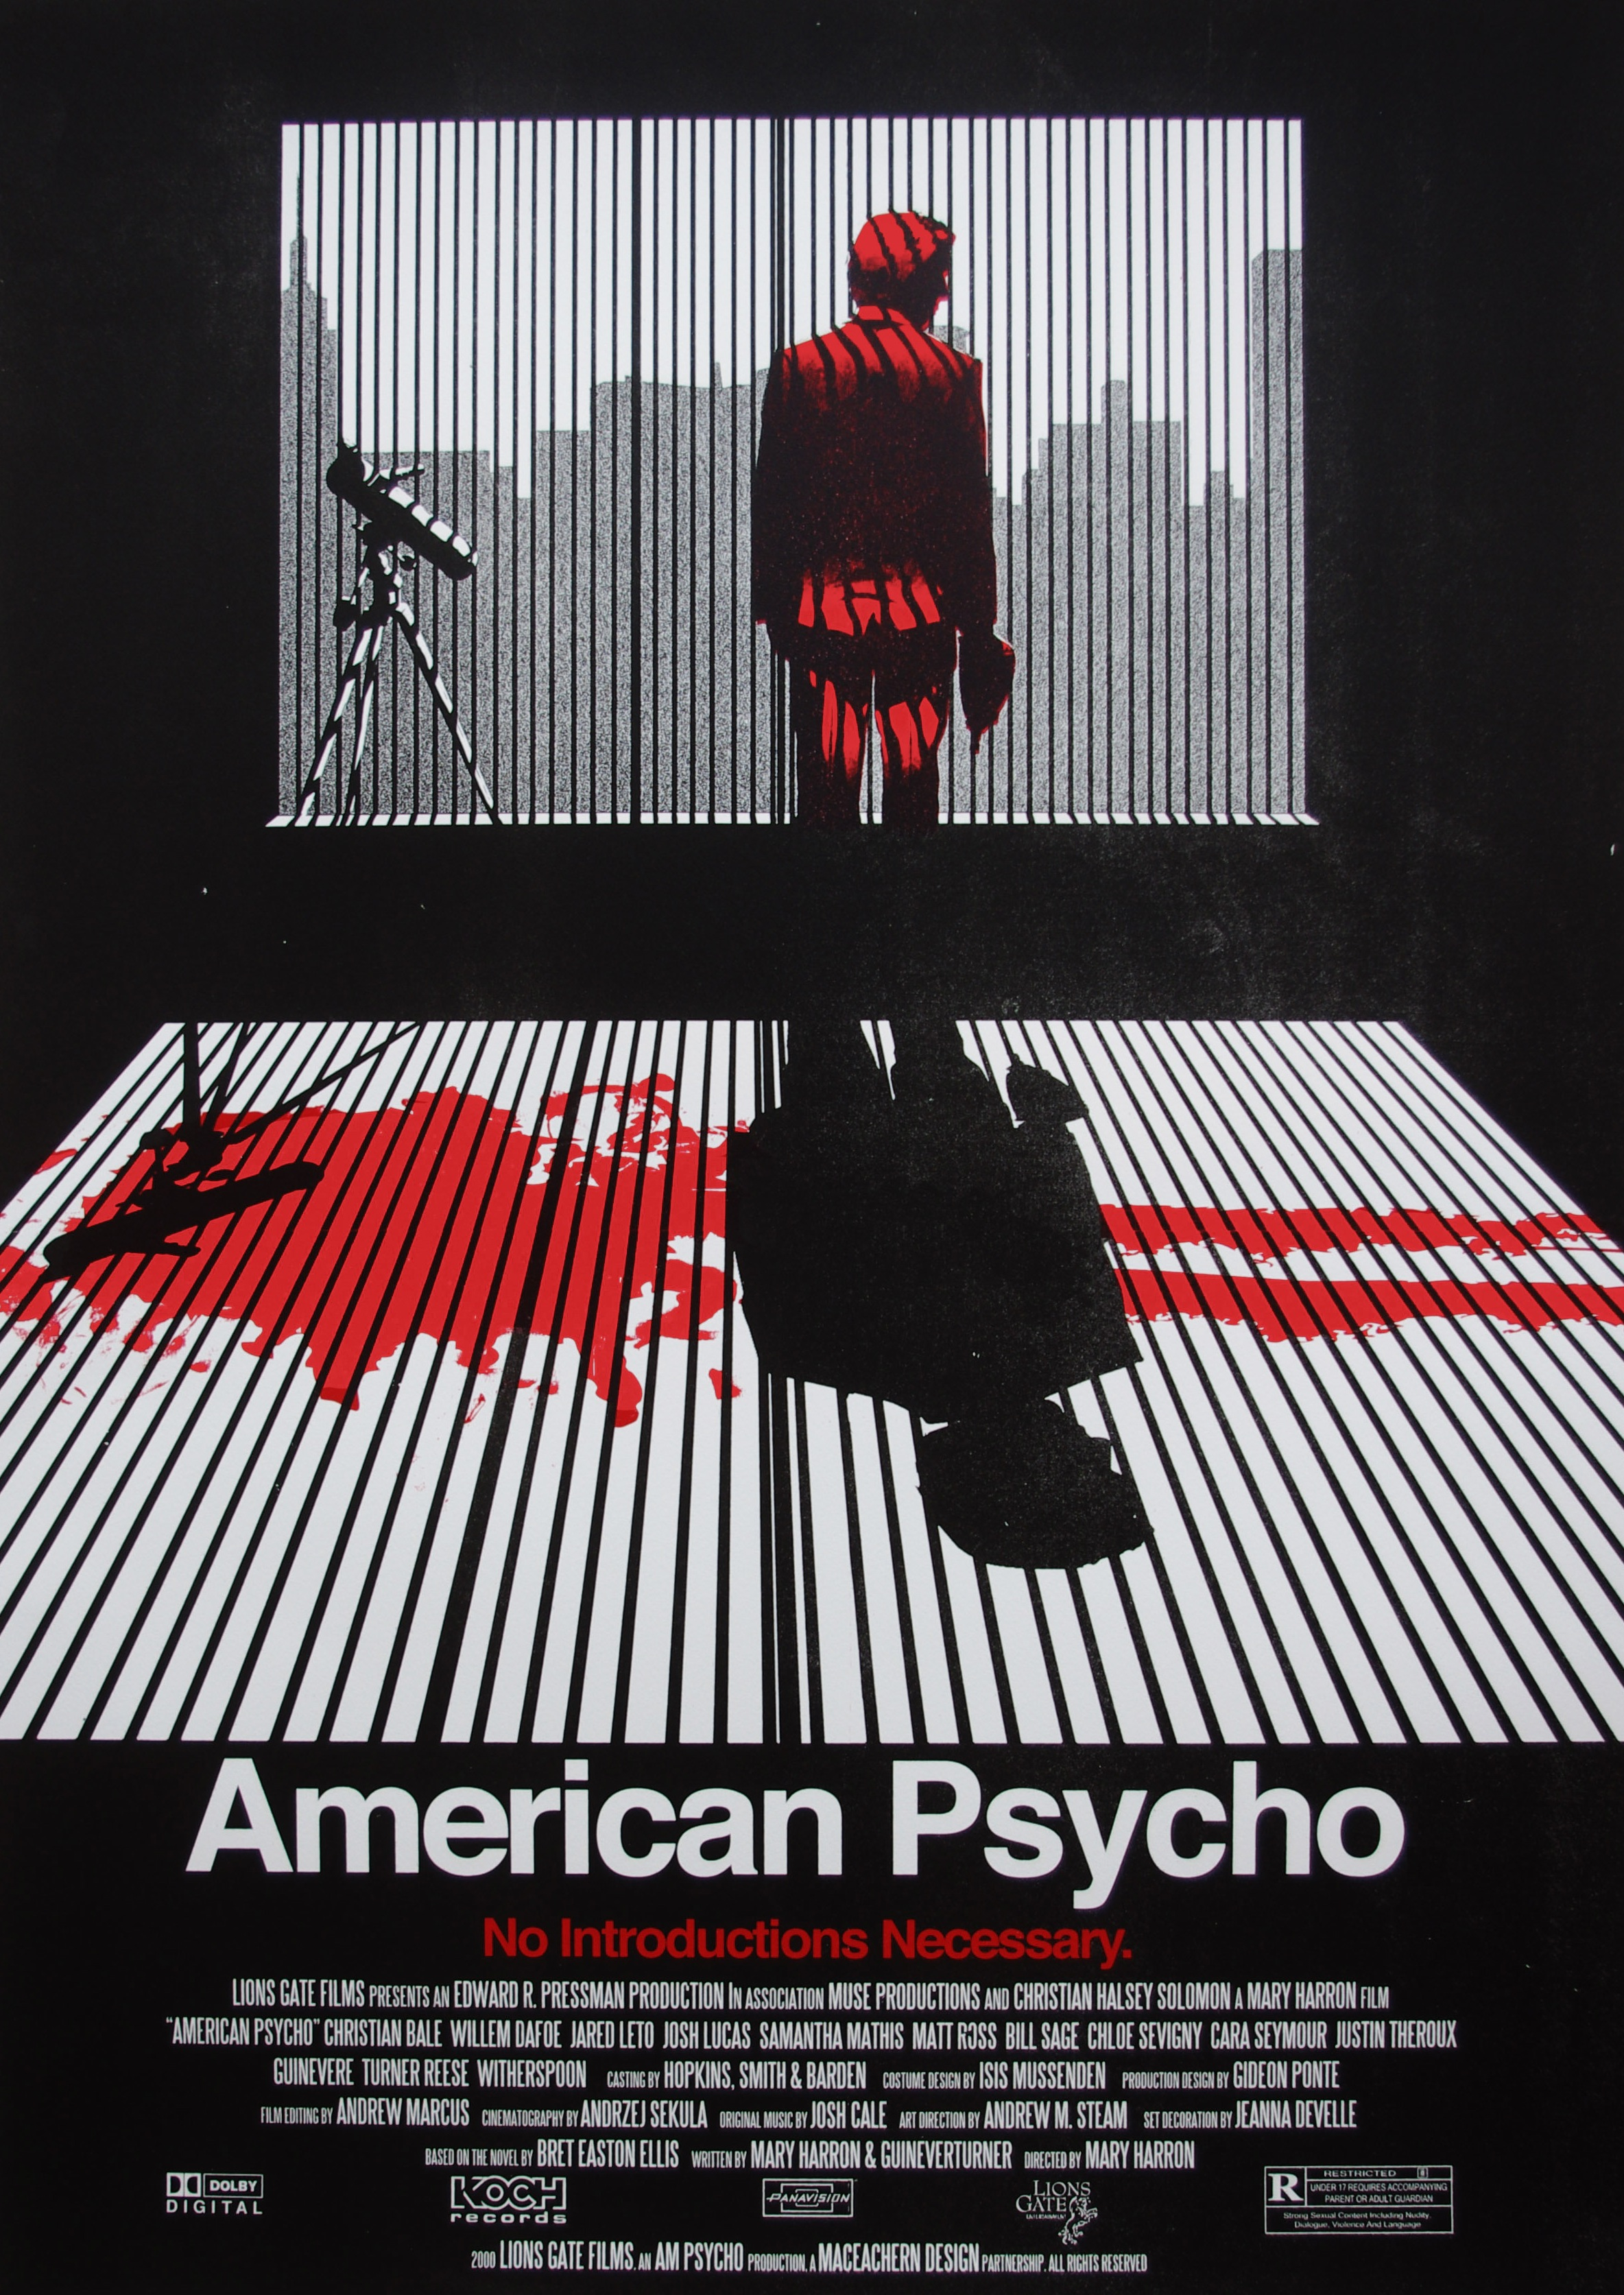 American 心理 poster Ryan MacEachern